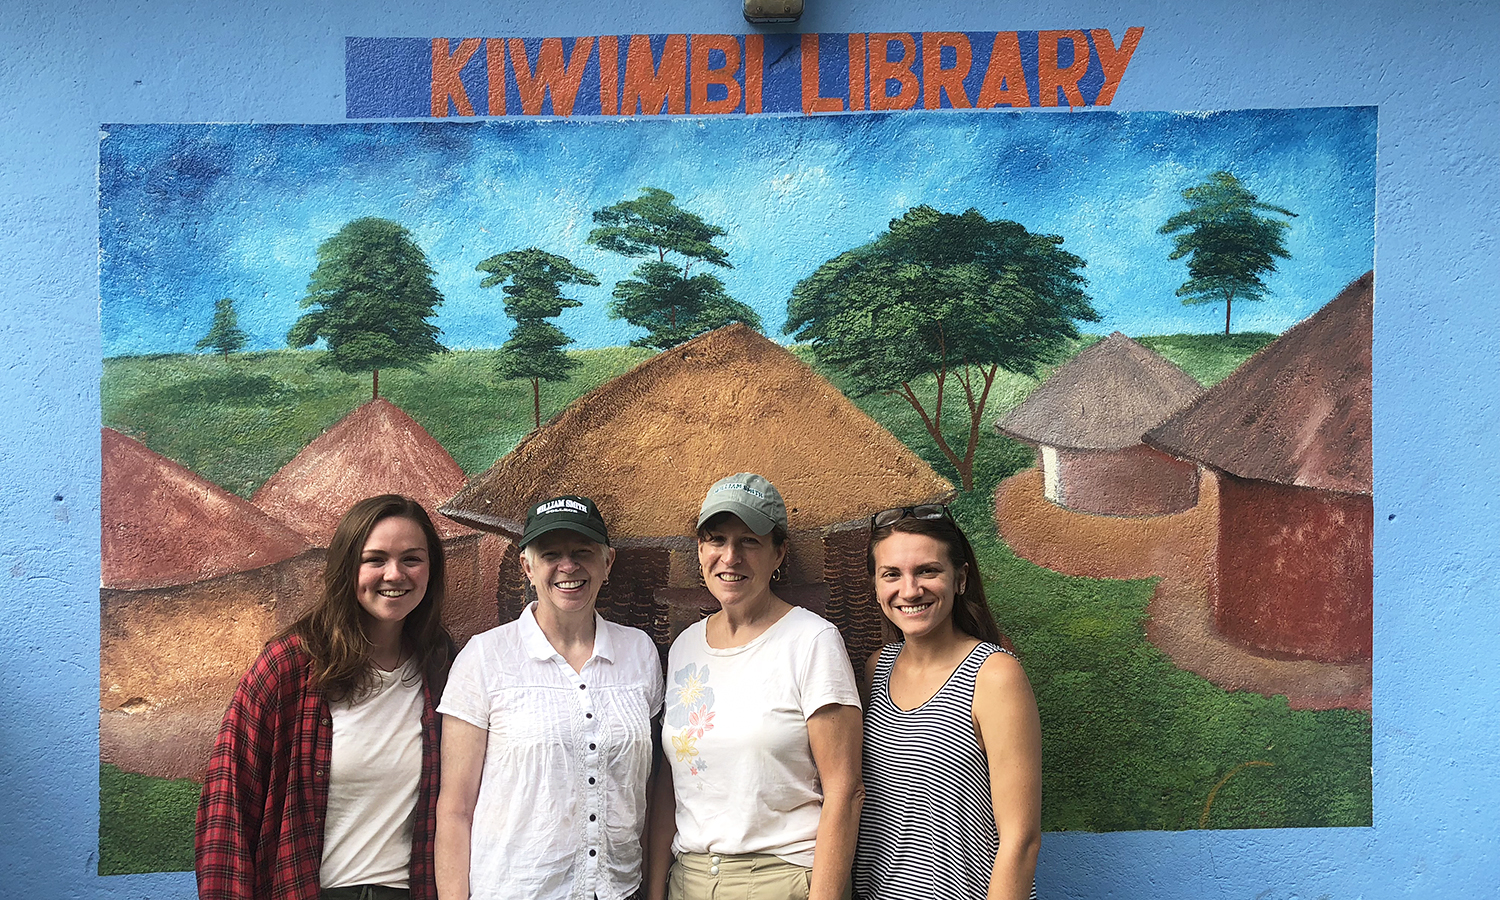 Sarah Banta '19, former HWS Trustee Carol Ulmer '72, Janet Selover Wulster '72 and Elizabeth Anderson '19 pose for a photo at with Kiwimbi International, a charity focused on supporting educational resources in rural Kenya and around the world.